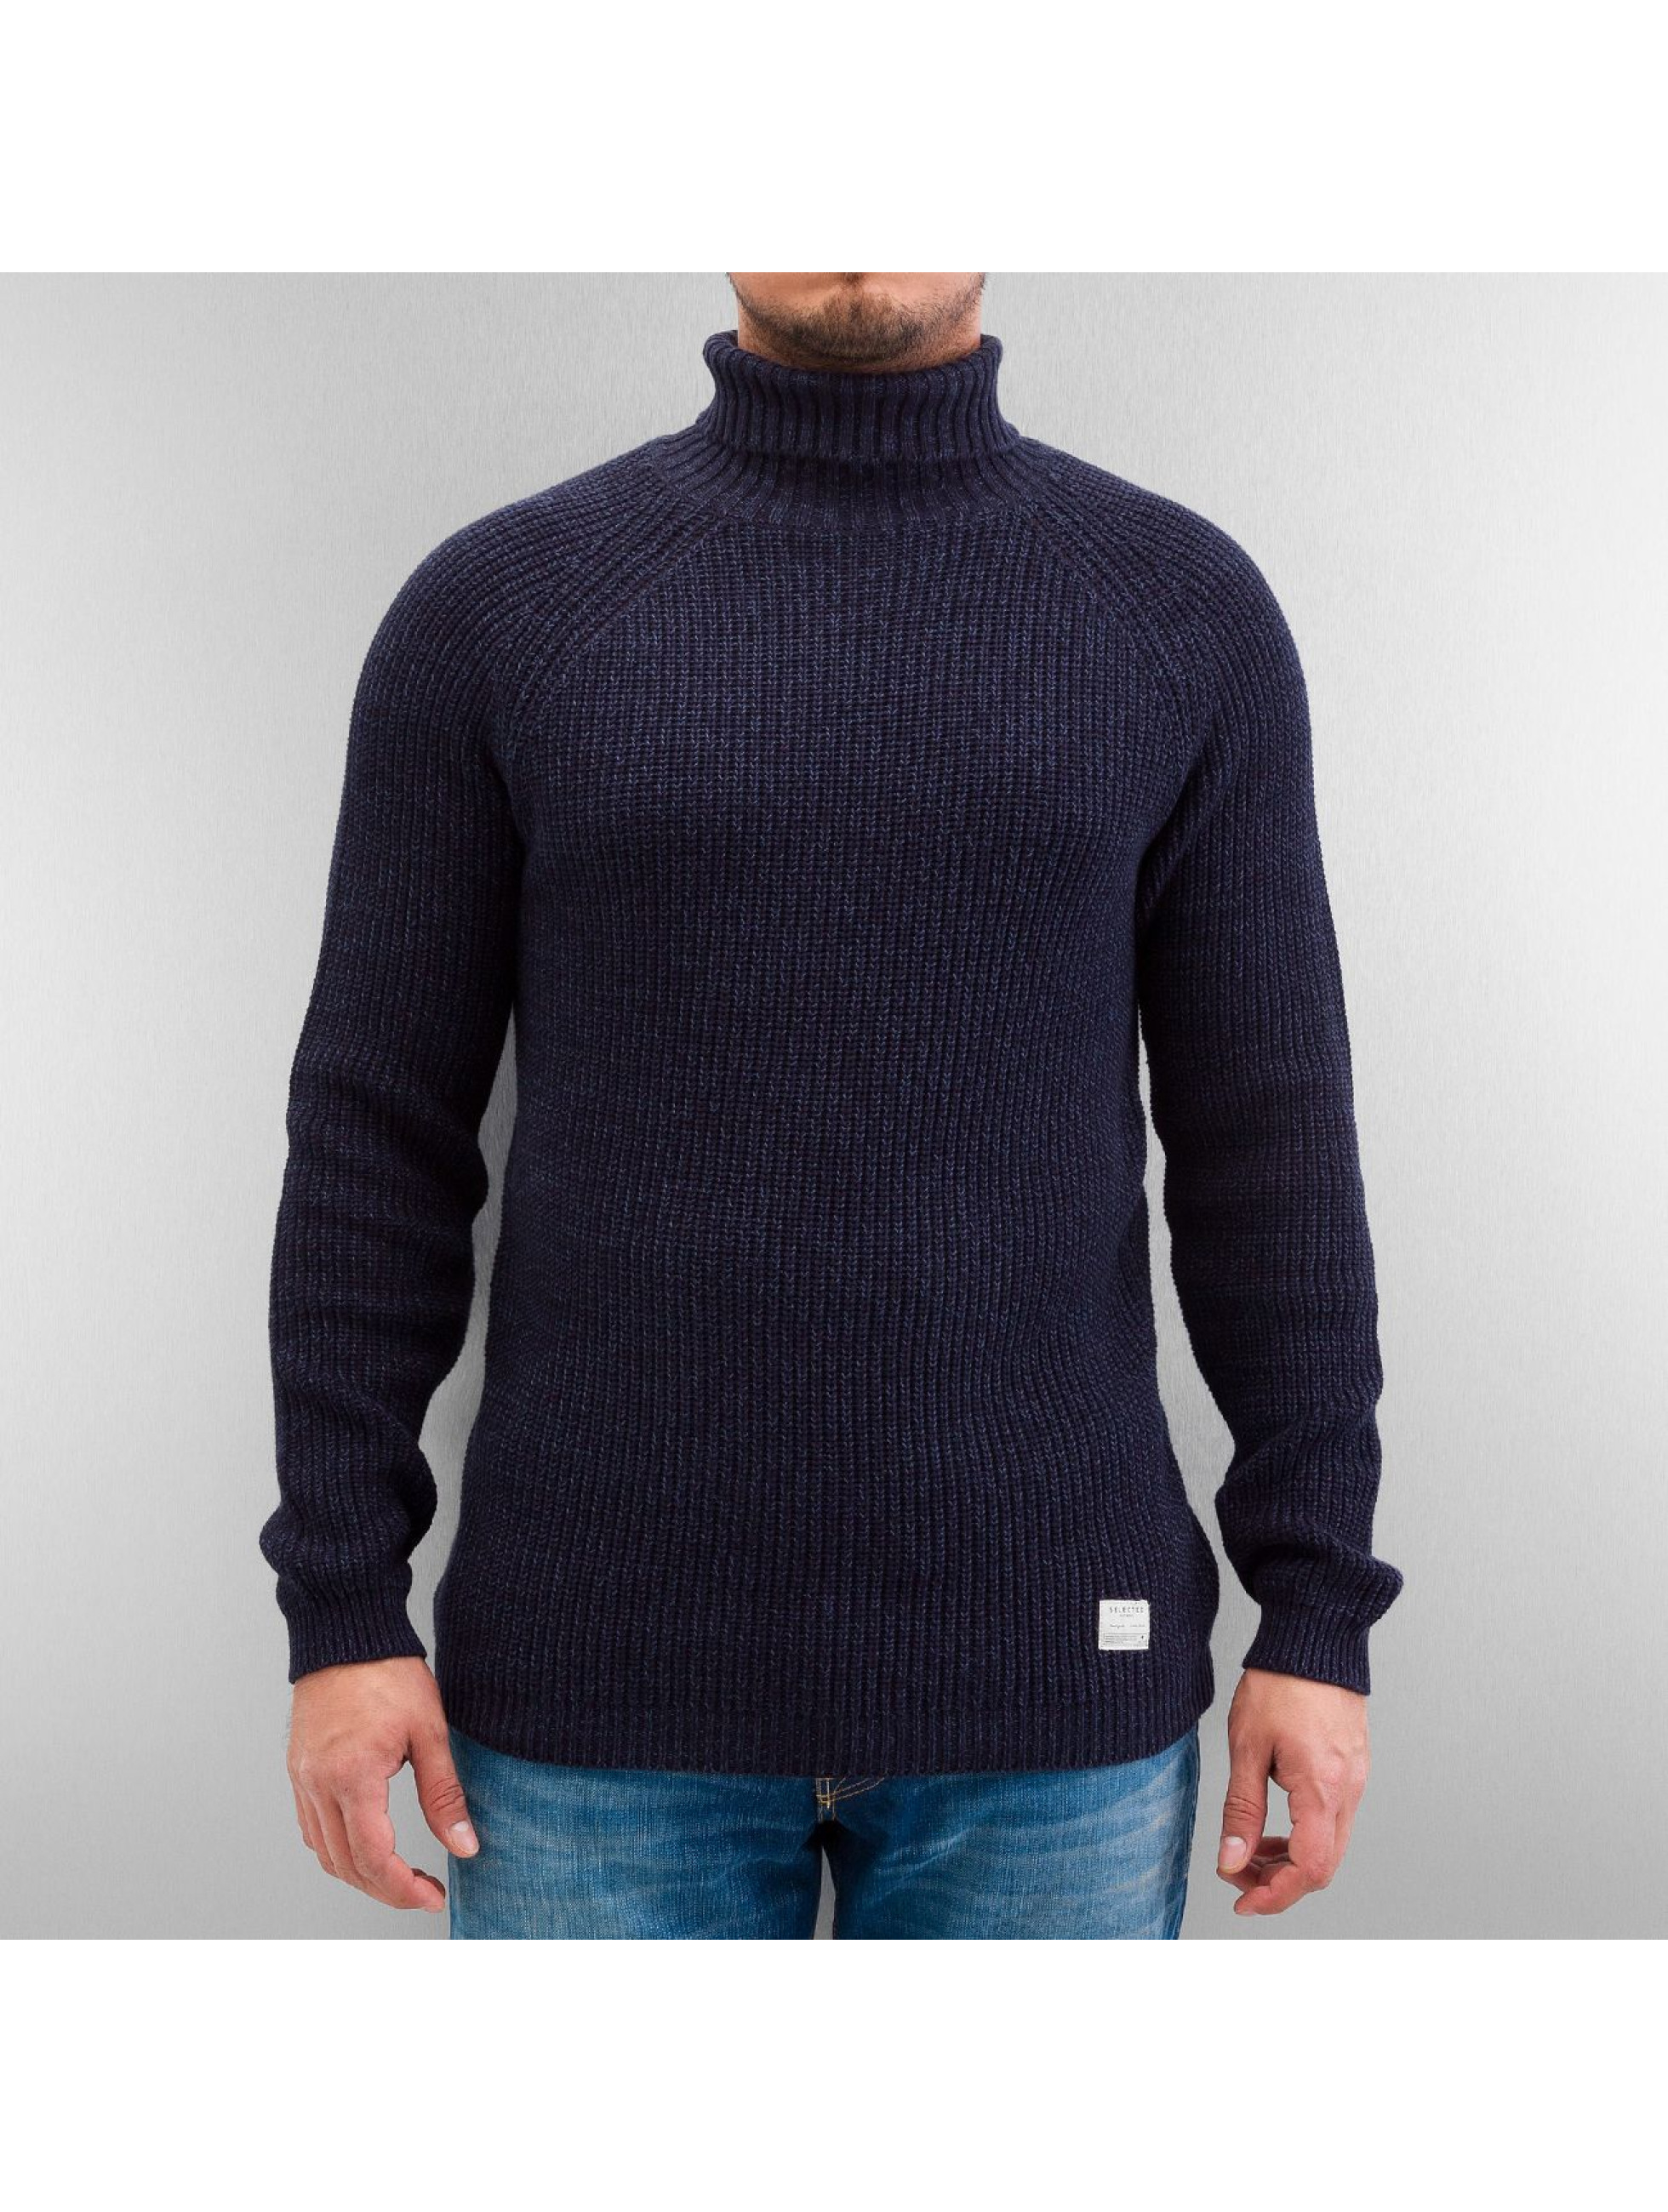 Selected Pullover Brick Turtle Knit blau